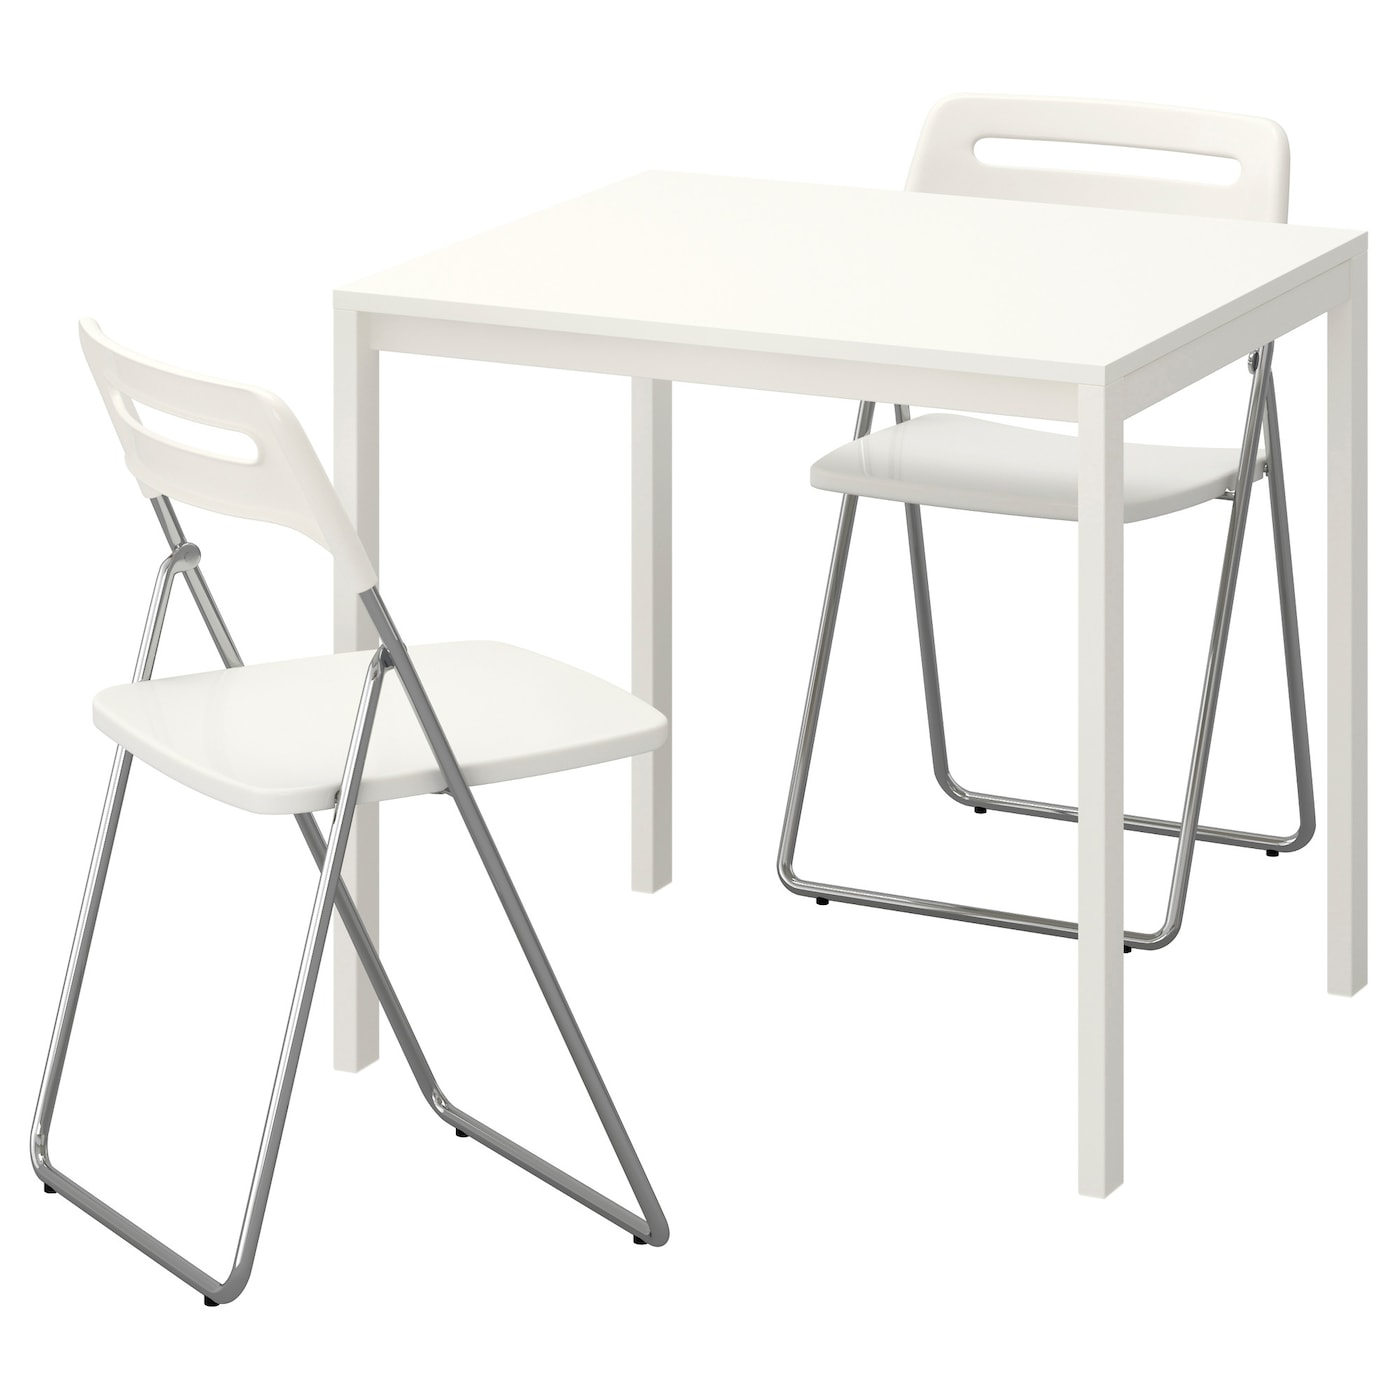 nisse melltorp table and 2 folding chairs white white 75 cm ikea. Black Bedroom Furniture Sets. Home Design Ideas